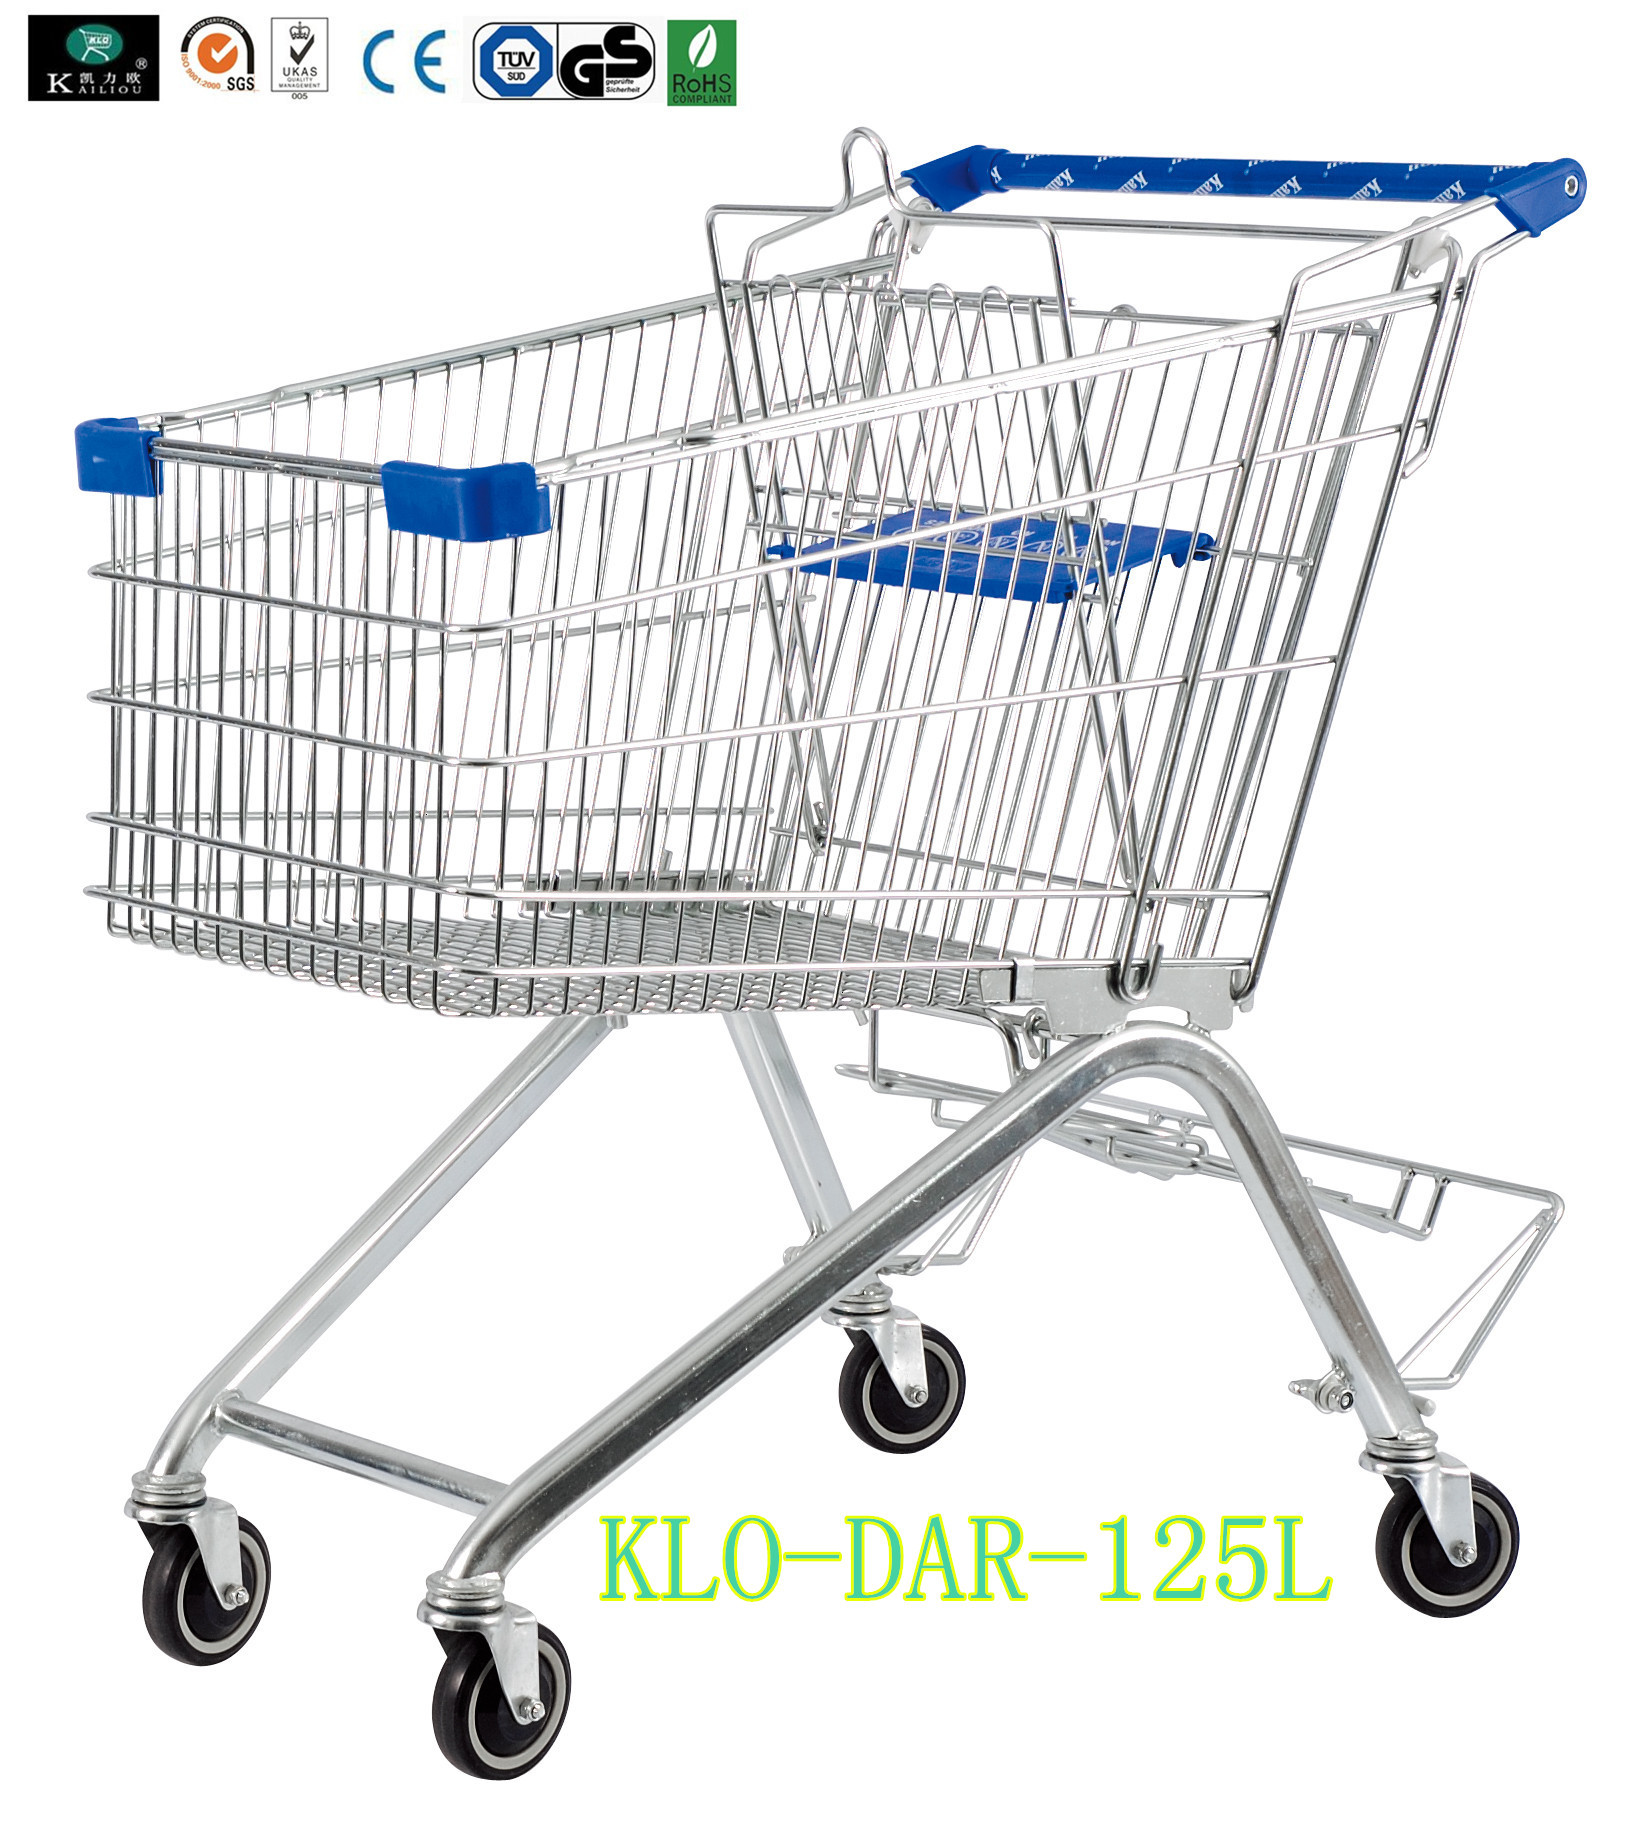 125L Toddler Metal Supermarket Cart With Beer Rack / 4 Swivel 4 Inch PU Wheel